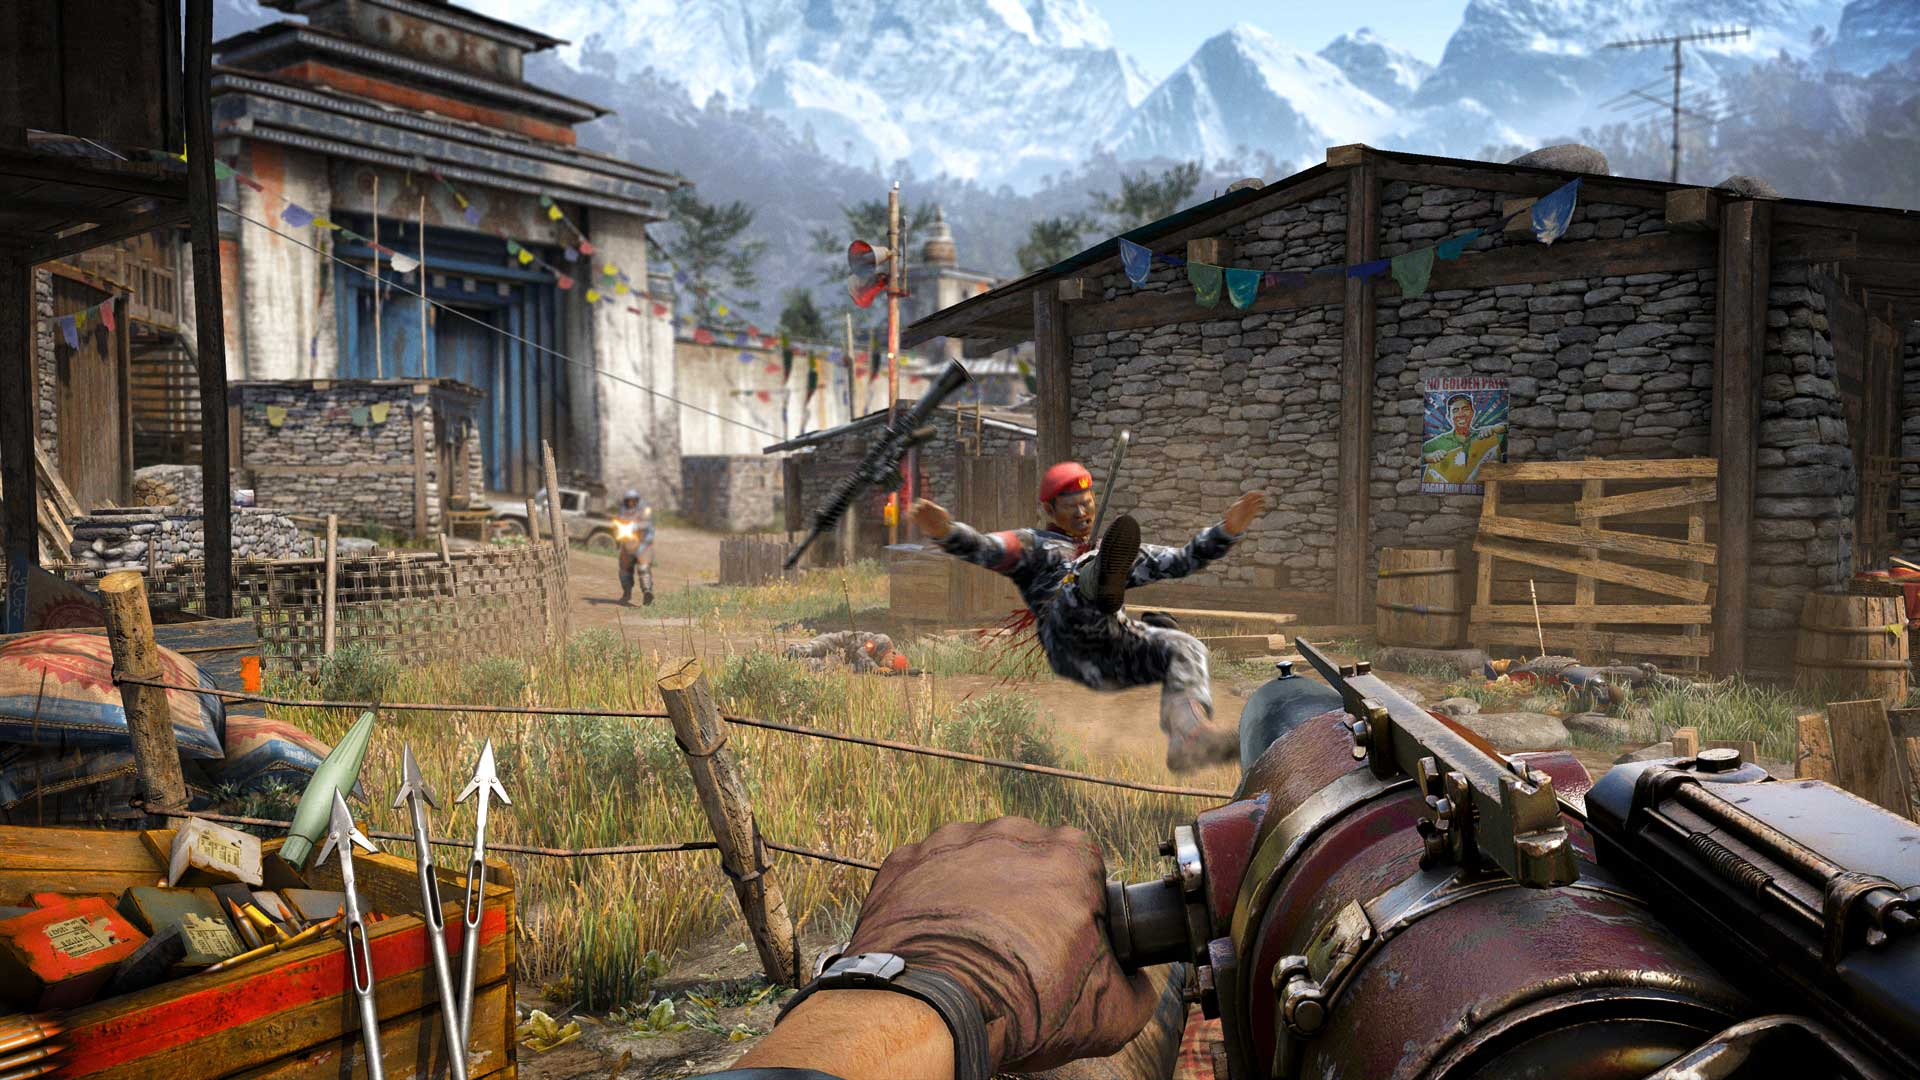 Far Cry 4 Runs At 1080p And 30fps On Ps4 Lasts Around 35 Hours